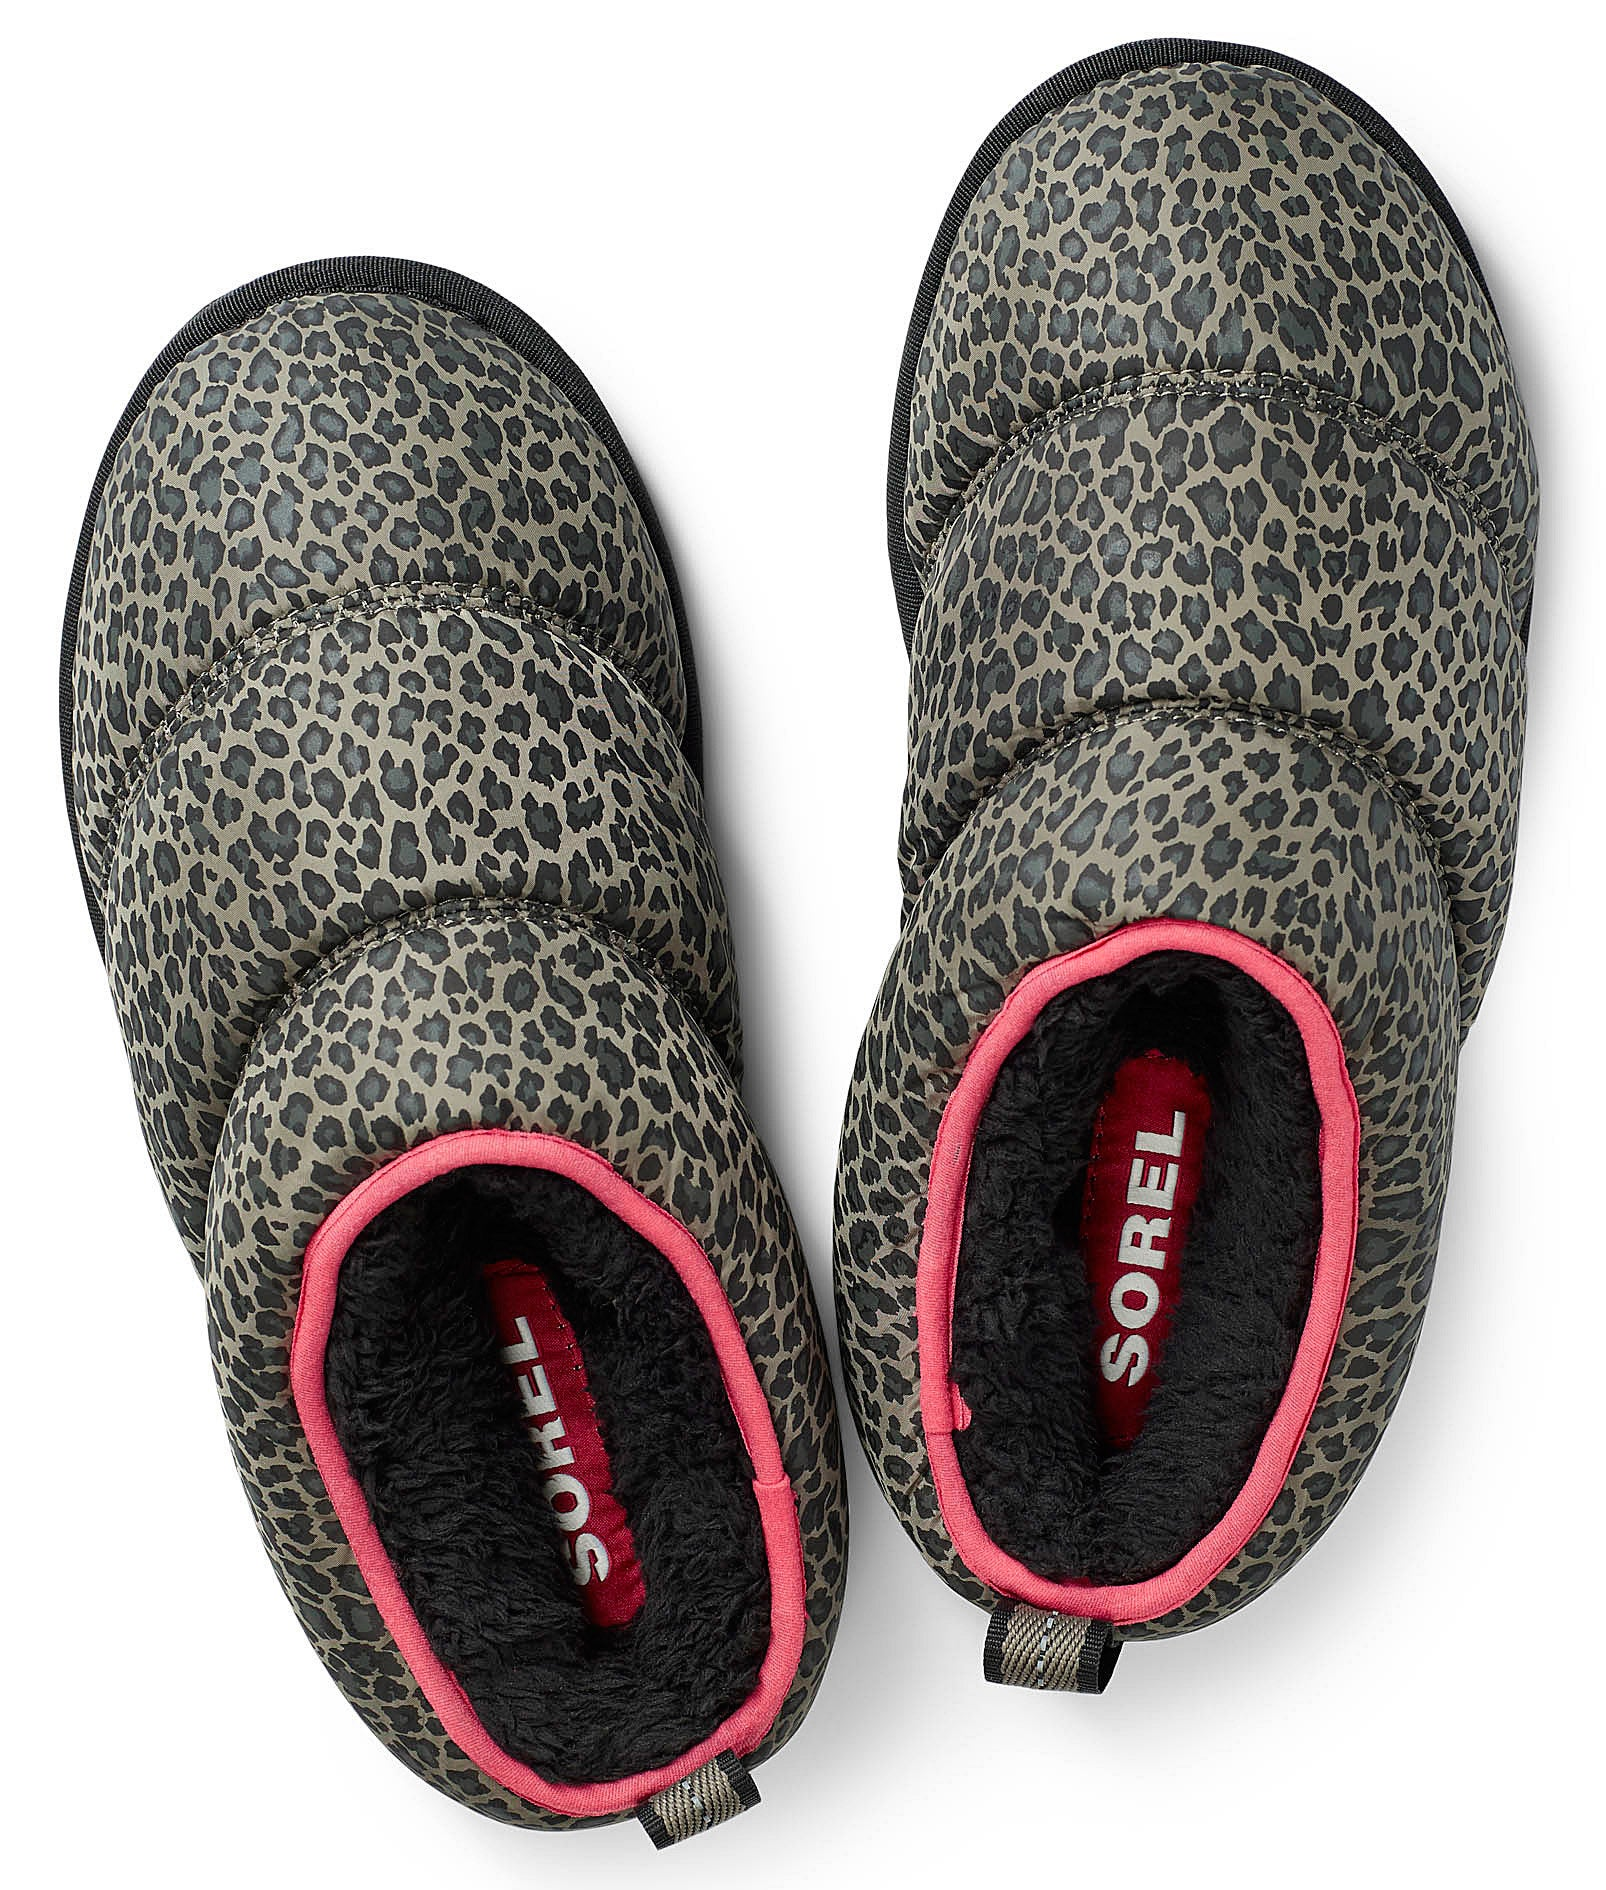 The pair of leopard print Sorel slippers